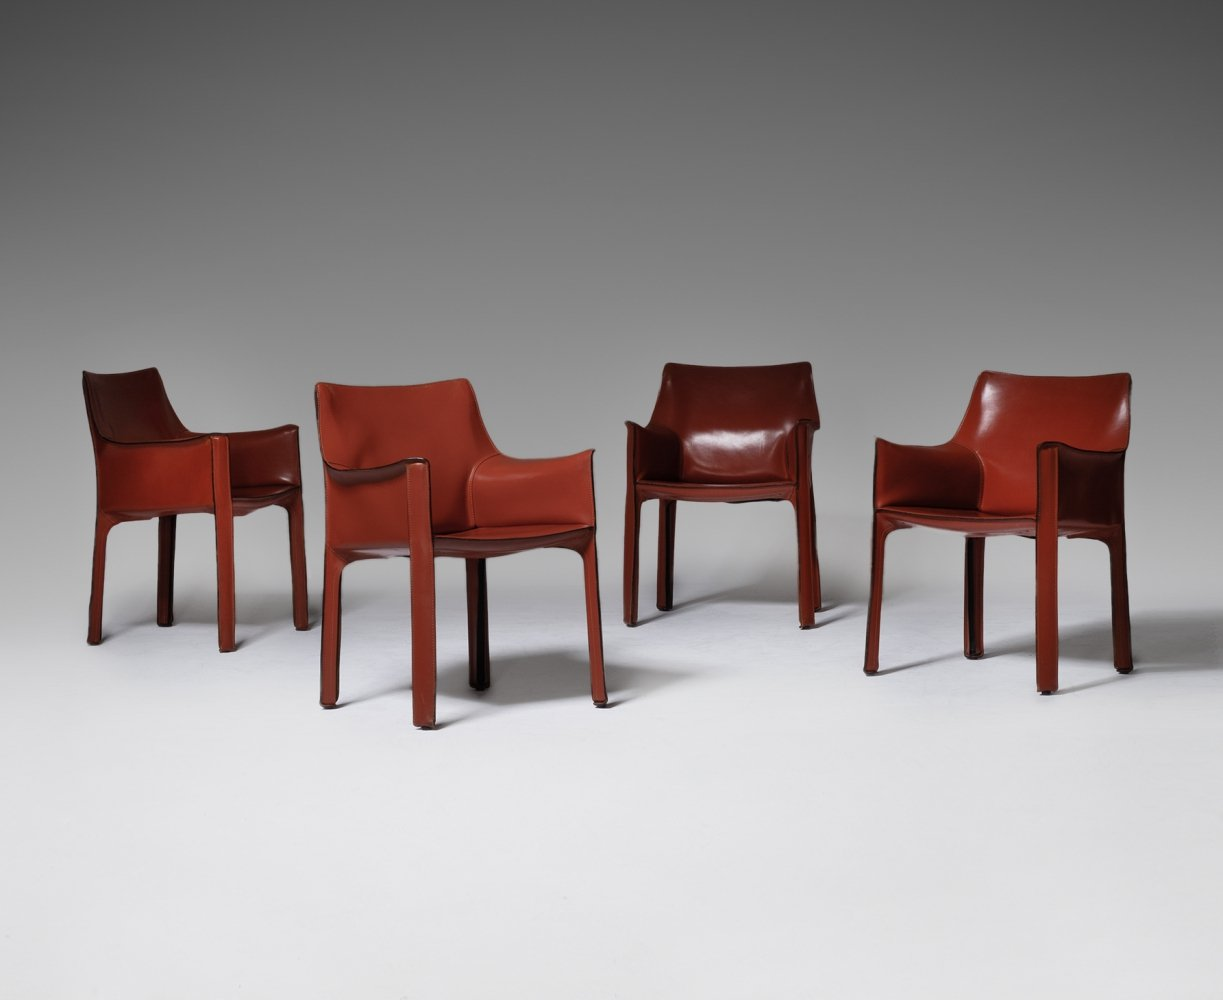 Set of 4 Cab chairs by Mario Bellini for Cassina, 1970s